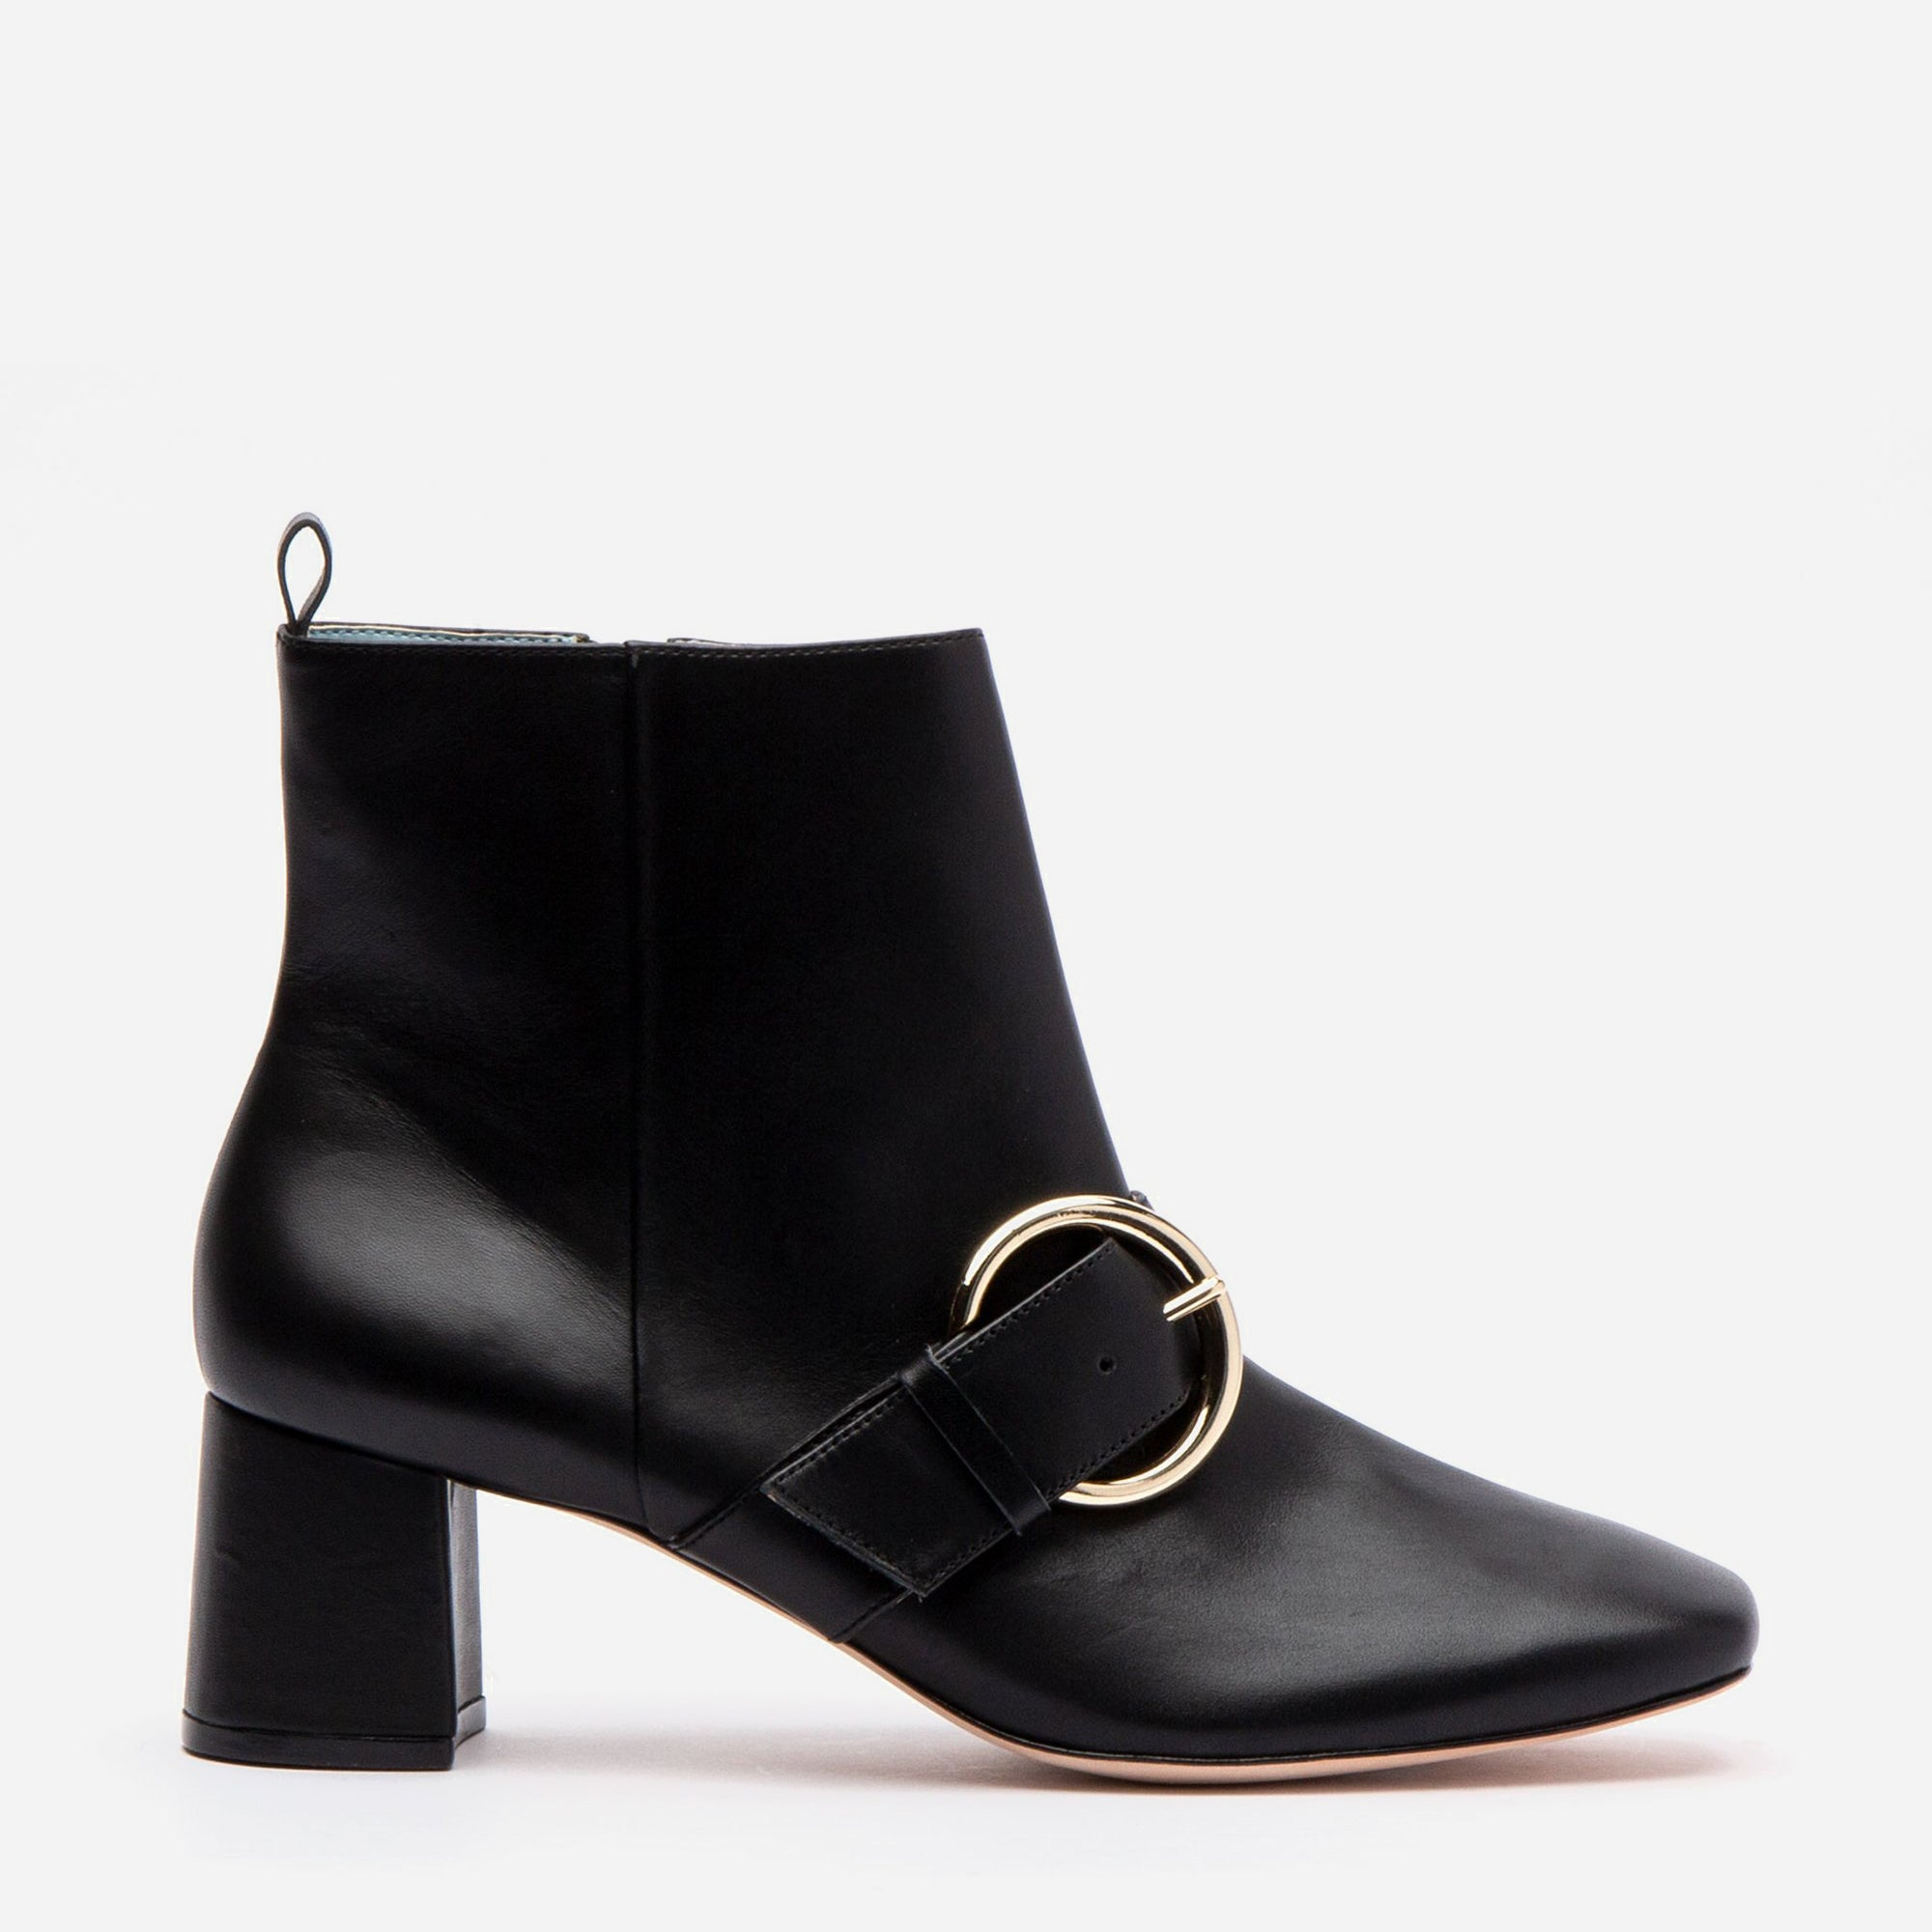 Cassie Leather Ankle Boots Black - Frances Valentine